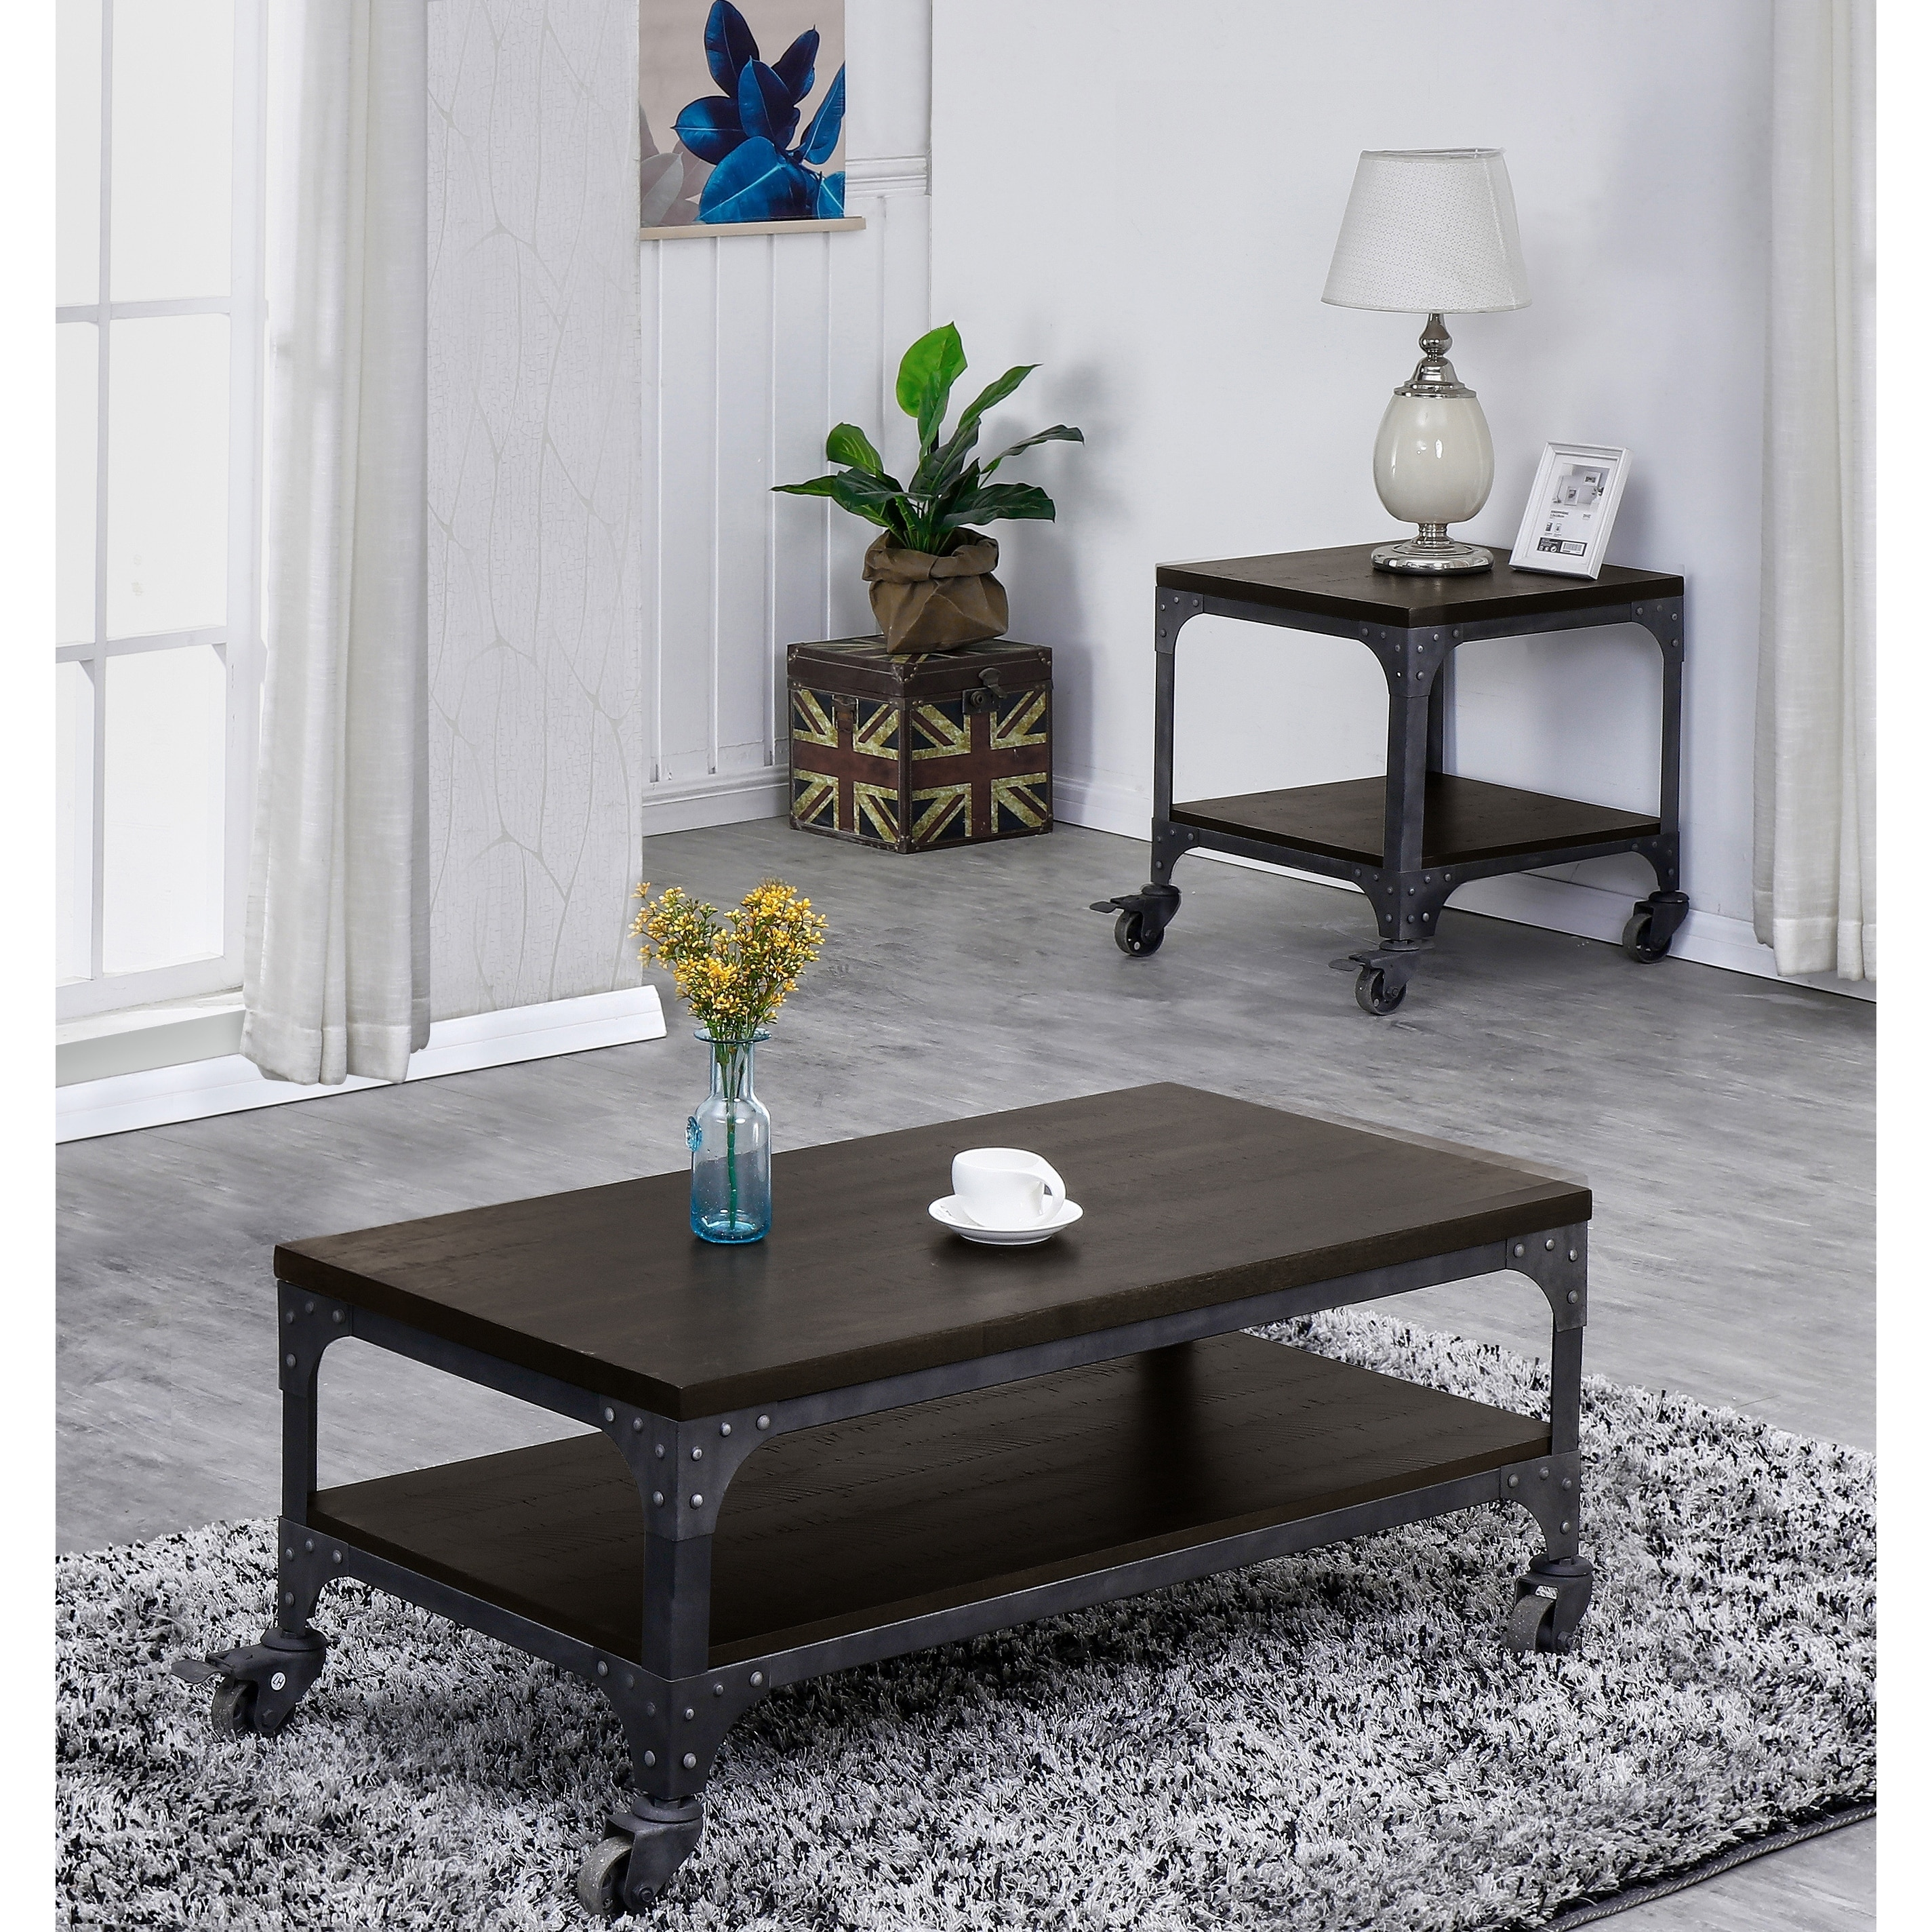 light rustic wood coffee table with wheels set coffee table end table